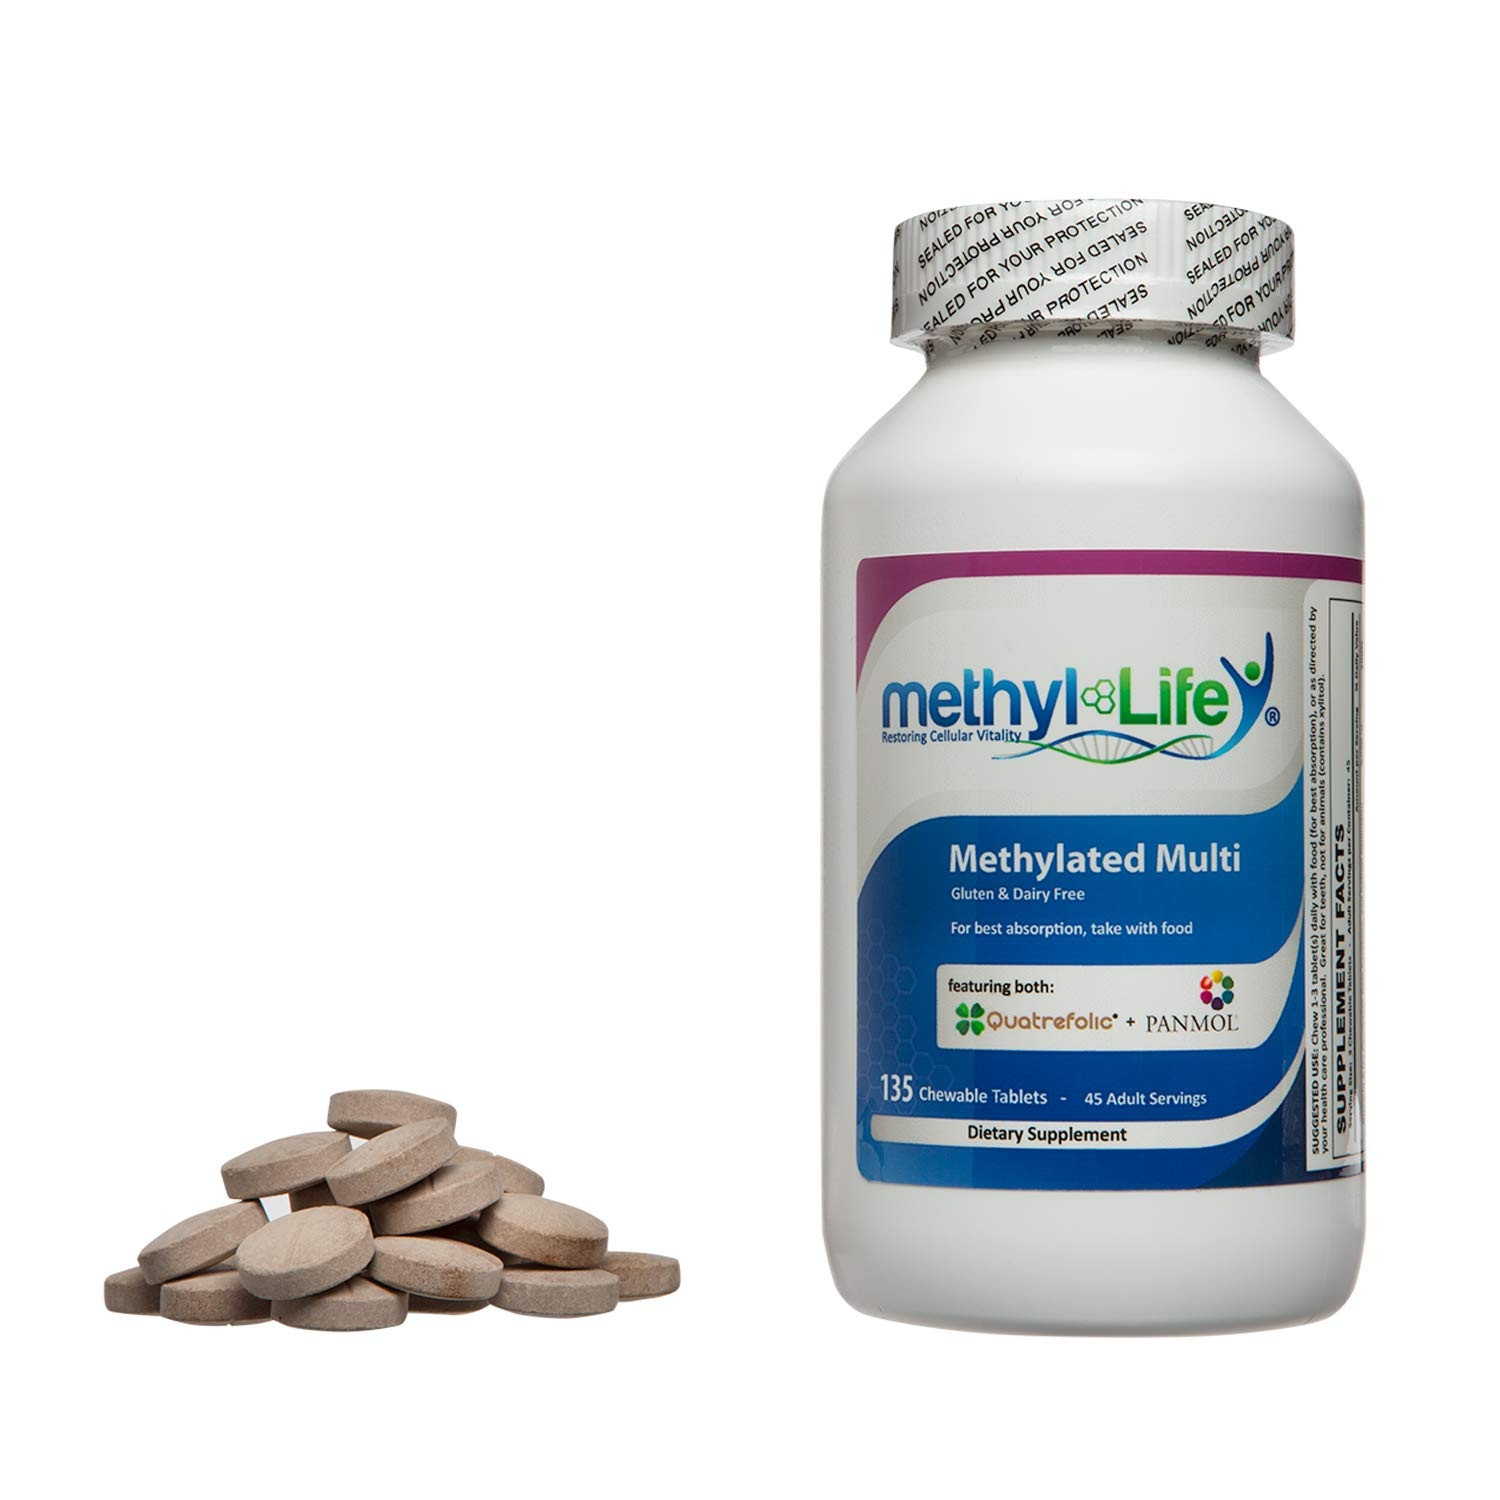 Methyl-Life Methylated Multi-Vitamin for Children and Adults 30 Adult Servings – 120 chew tablets